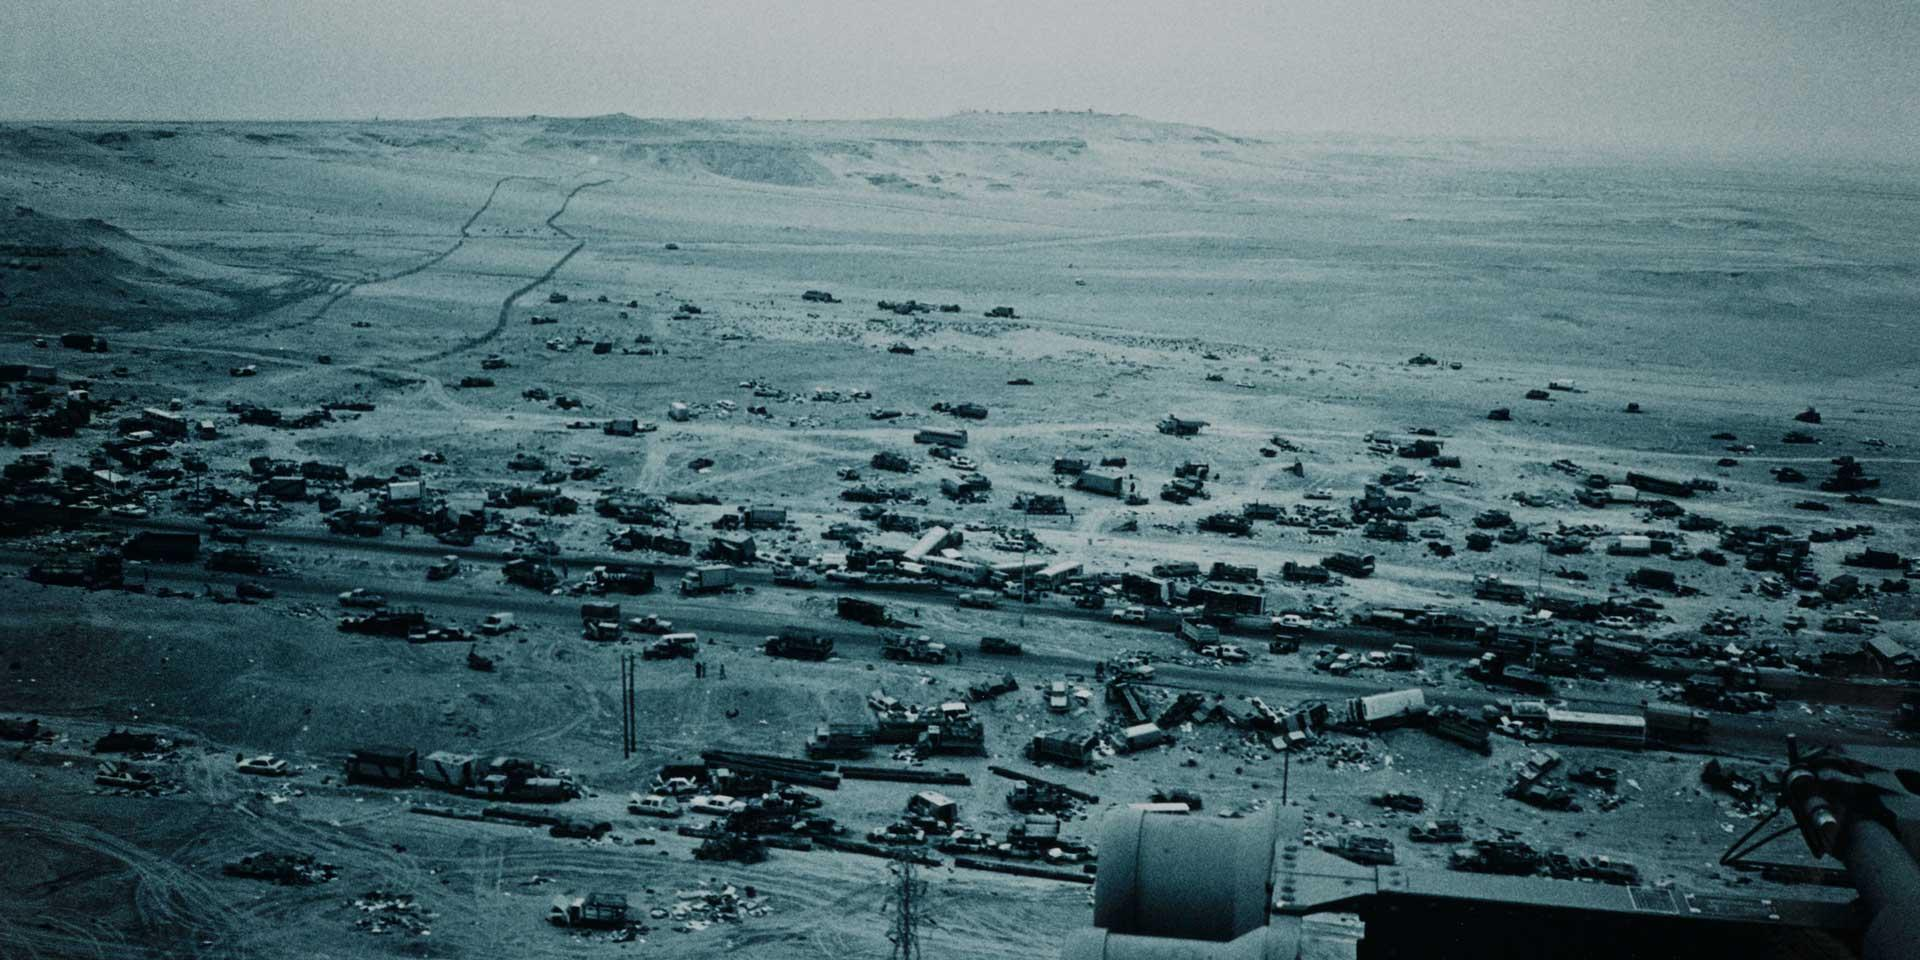 Wrecked military and civilian vehicles on the Basra road, 1991